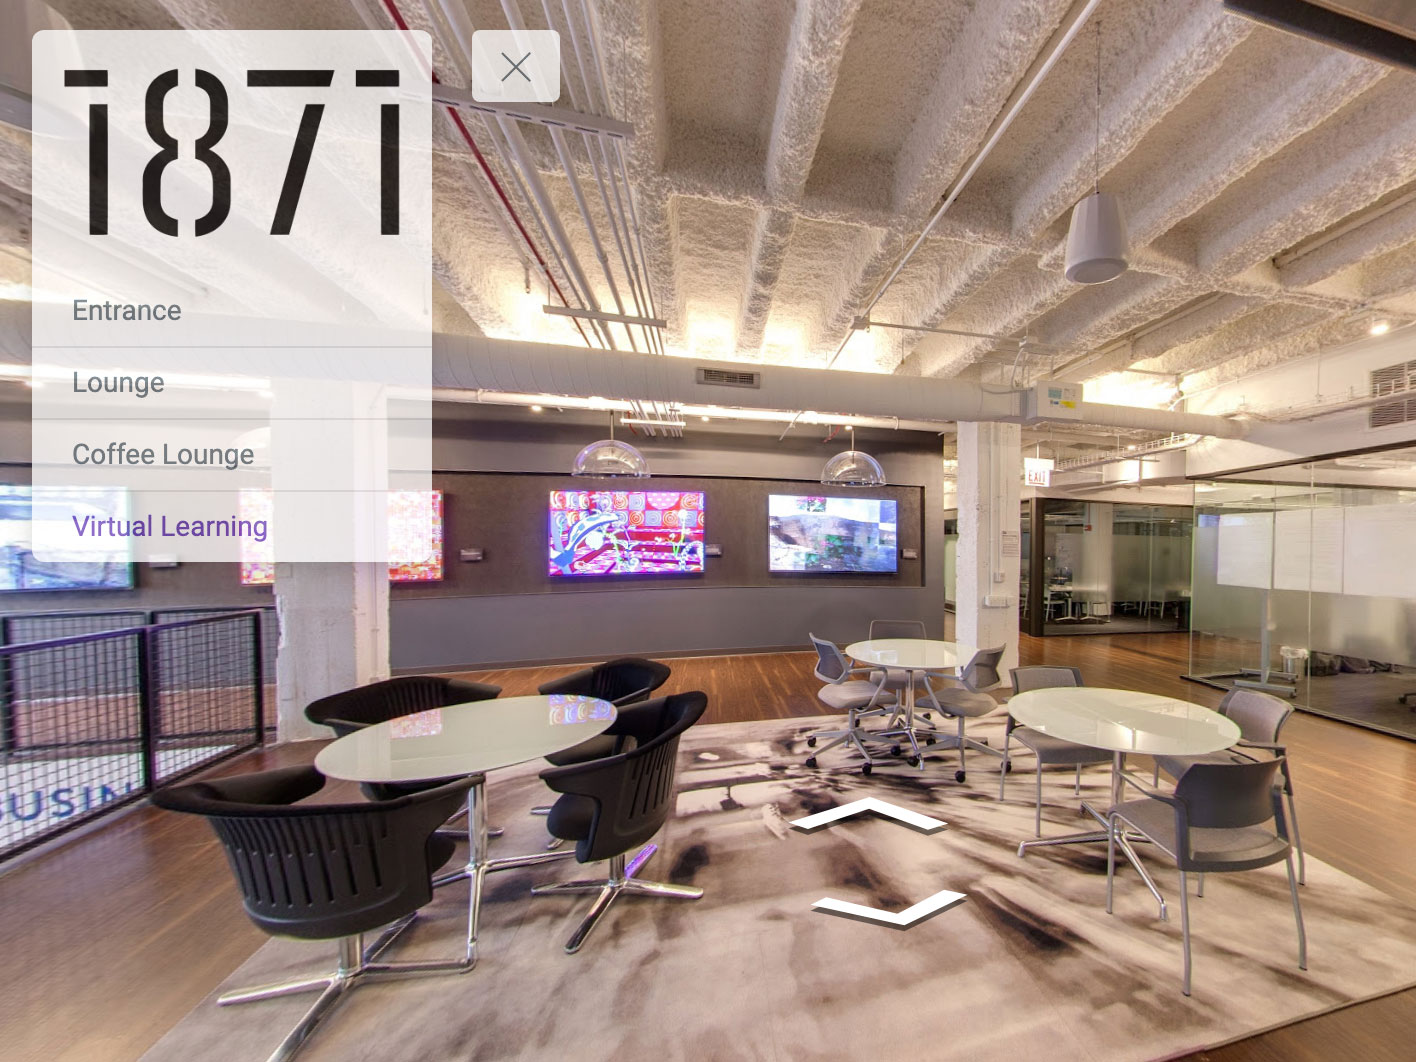 virtual tour service provider for co-working office spaces nationwide